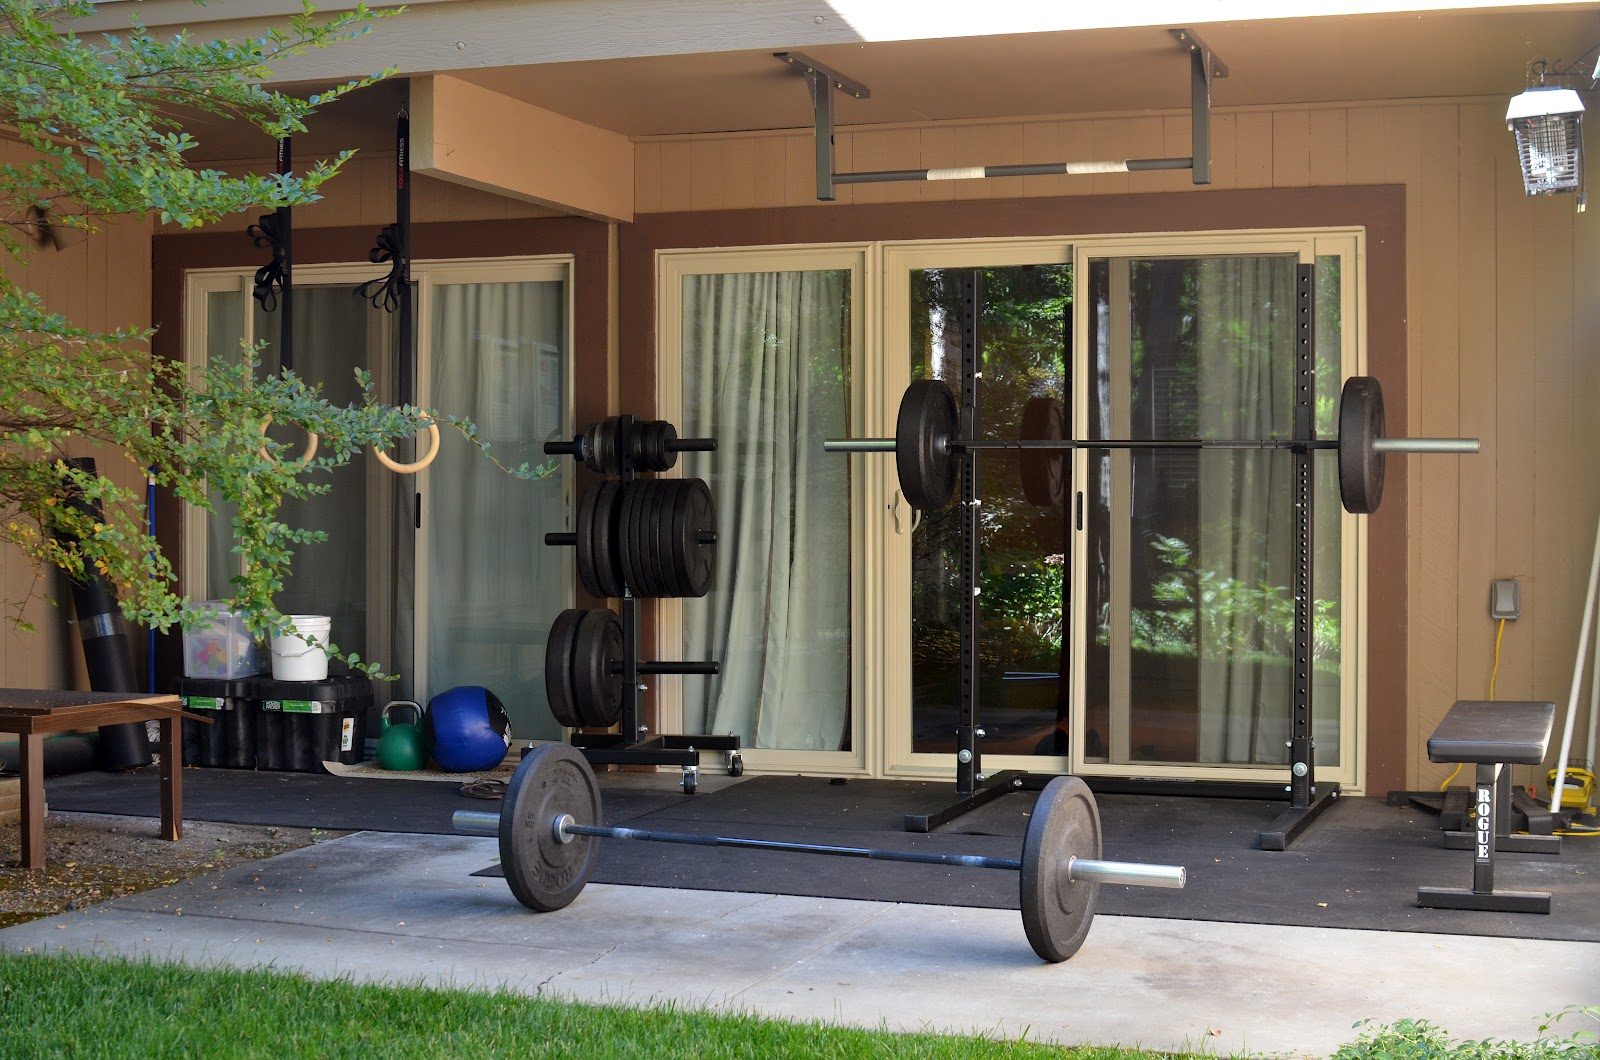 Jes' CrossFit Blog: My Home Gym